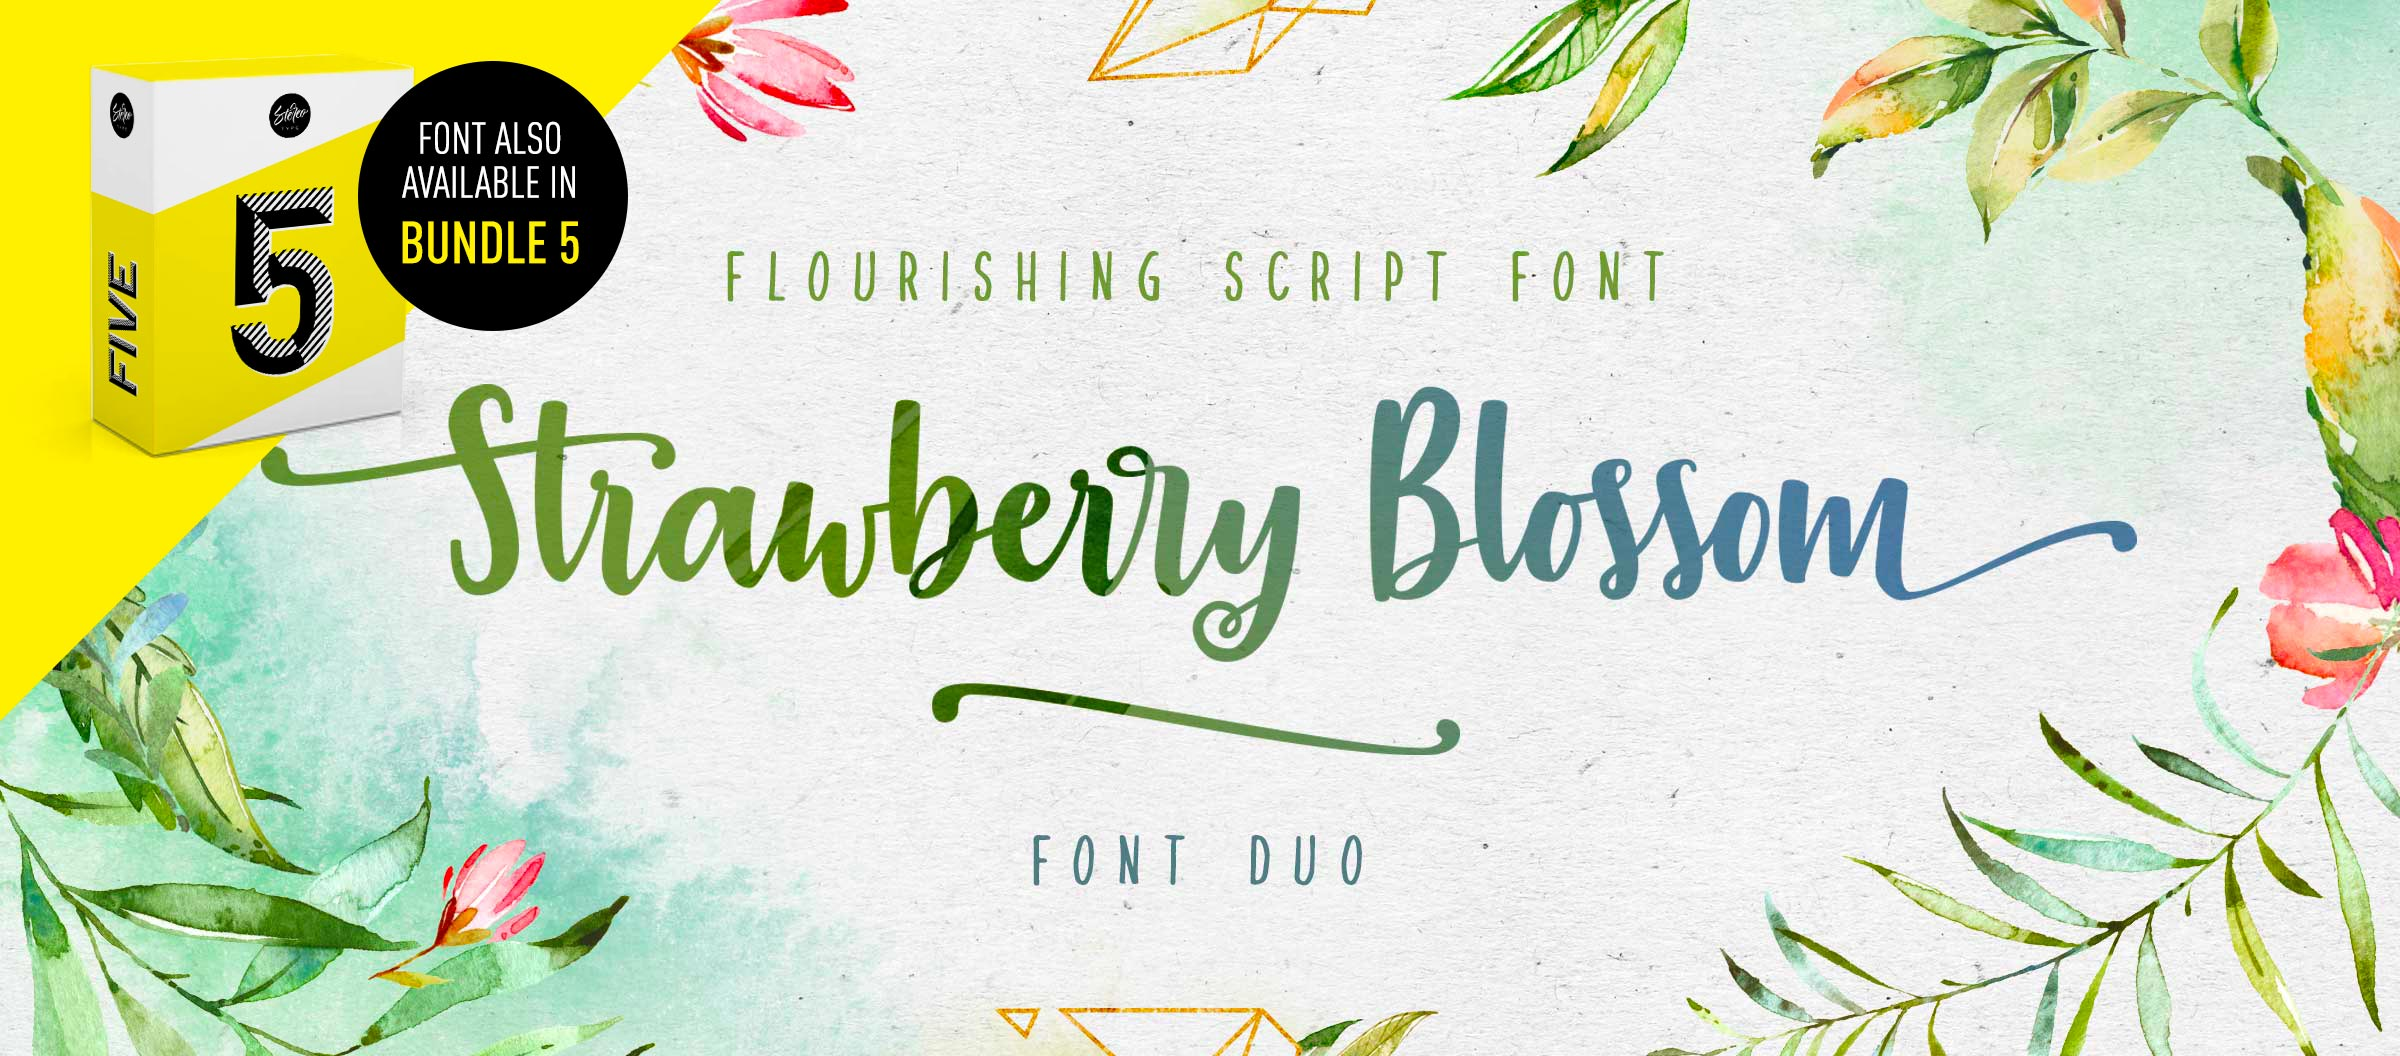 strawberry_blossom_bundle-1